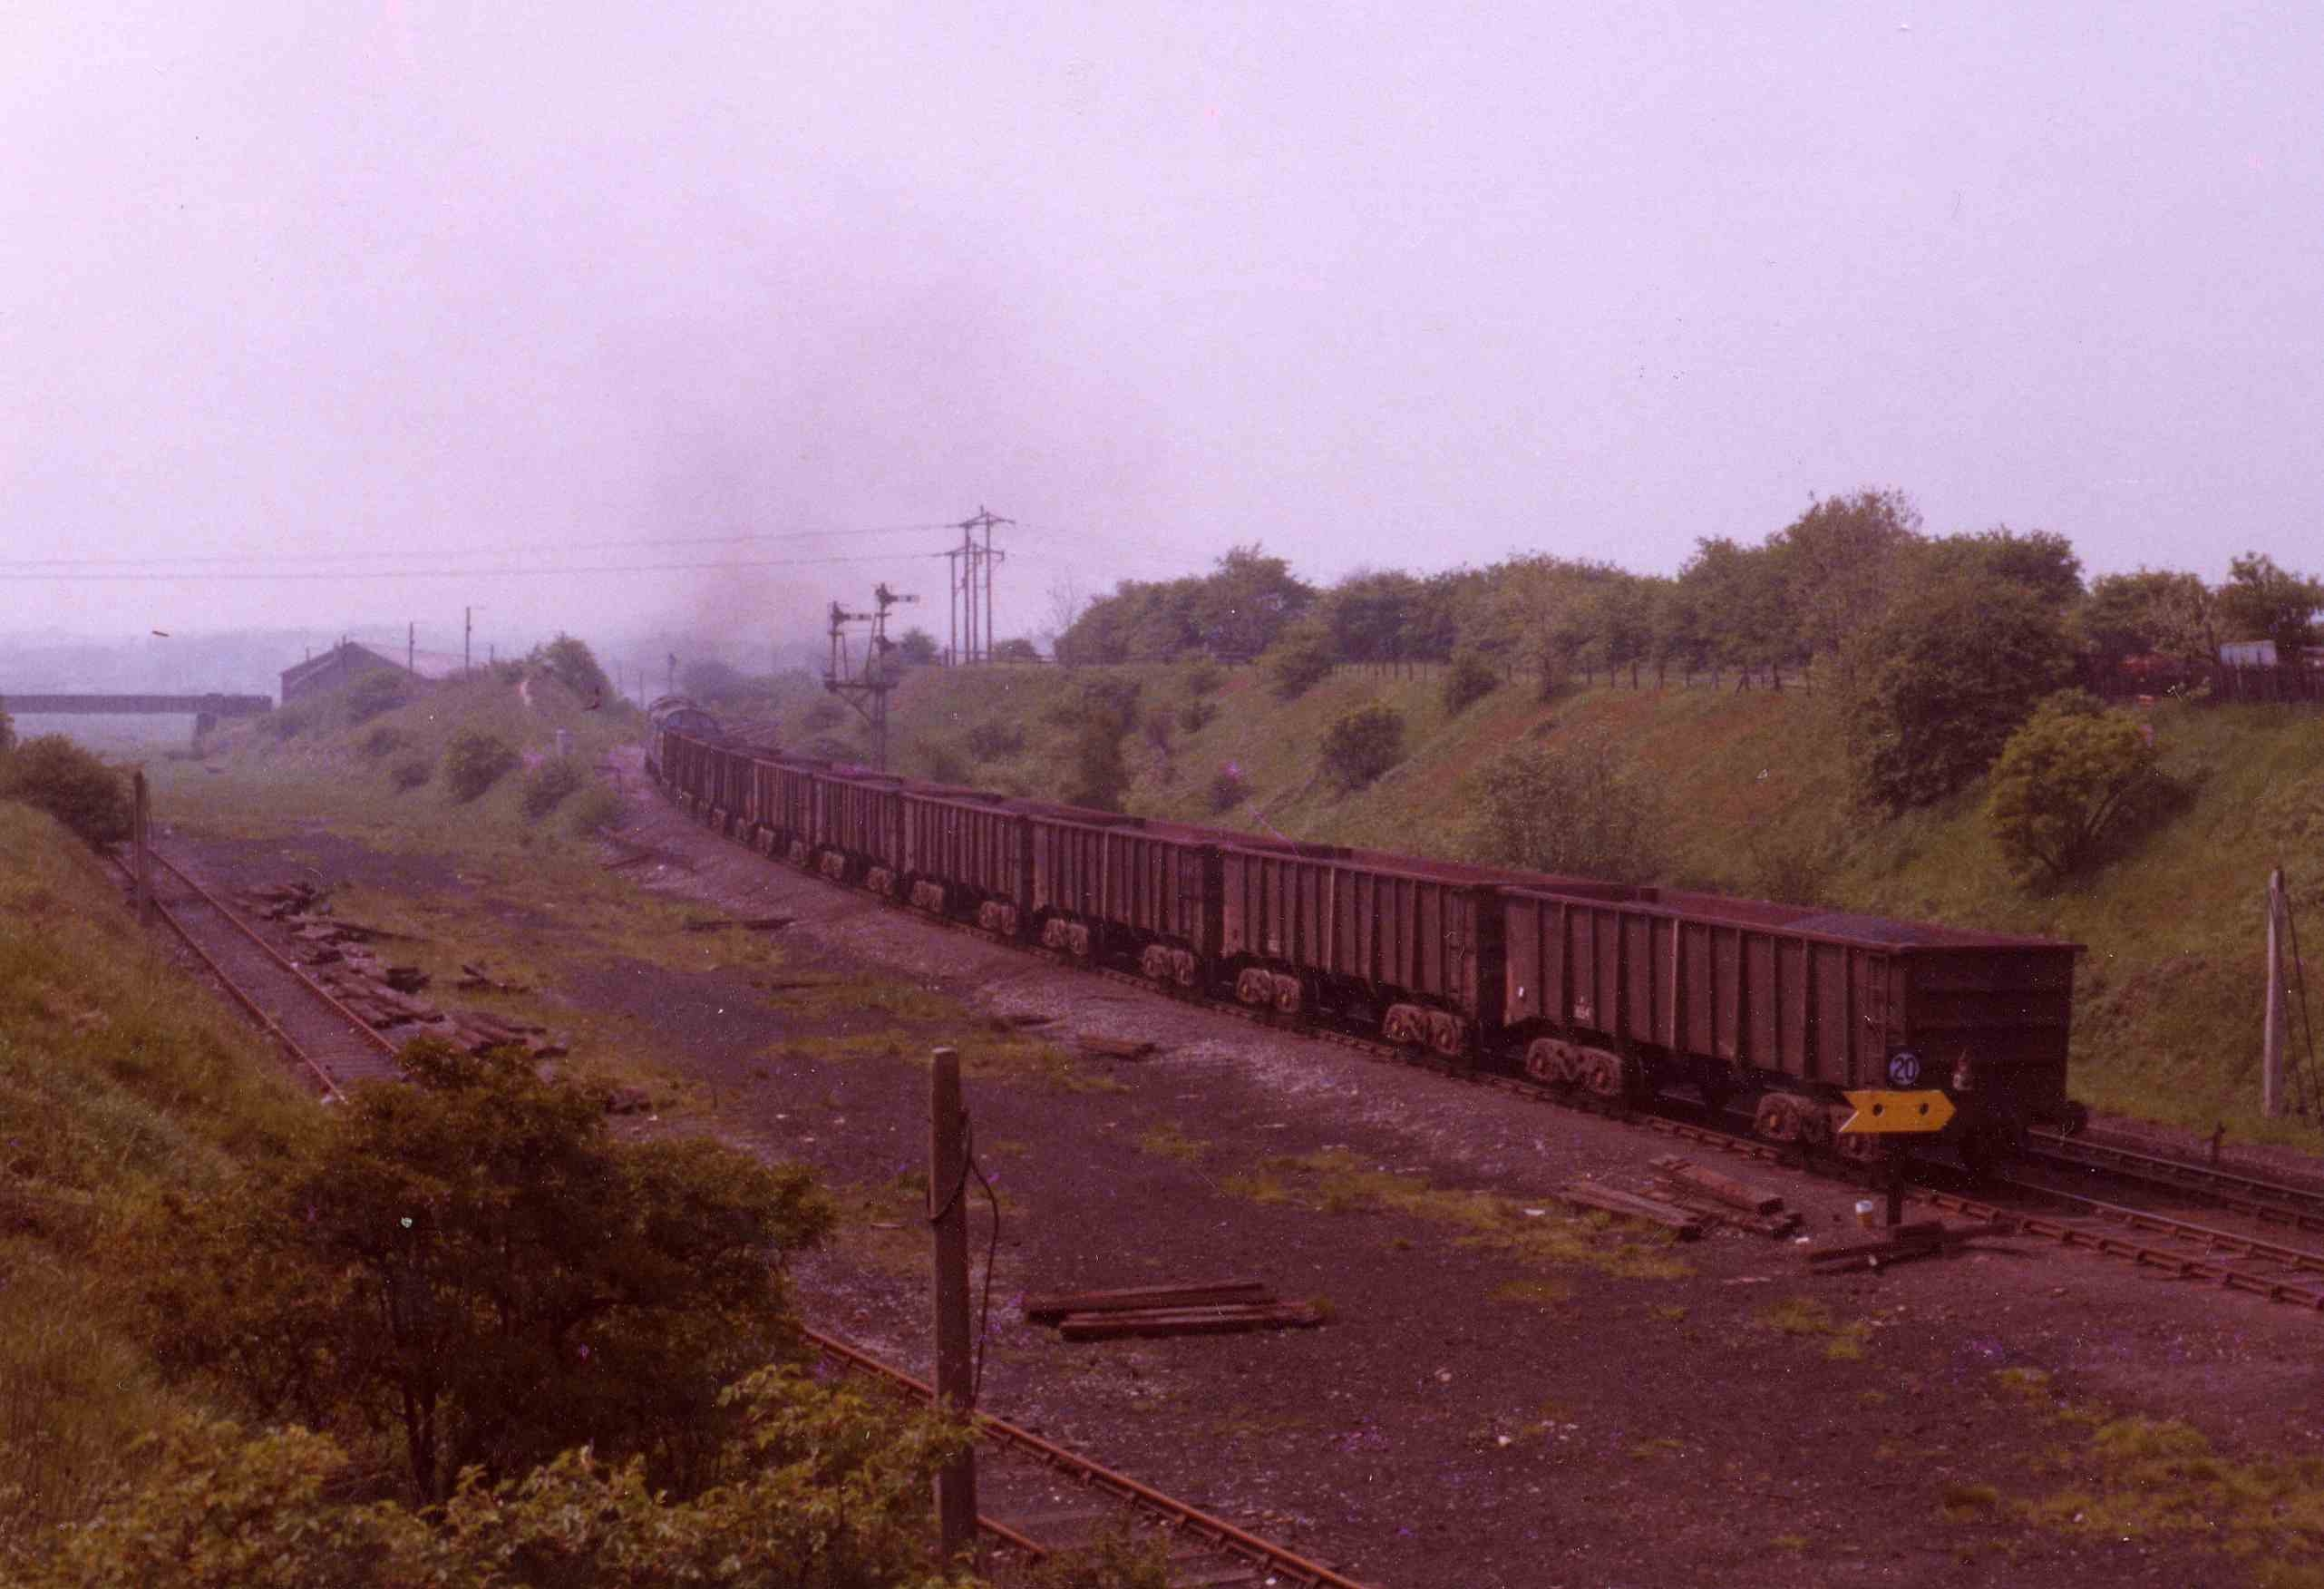 South_Pelaw_An_ore_train_passes_the_remains_of_Pelton_Lev